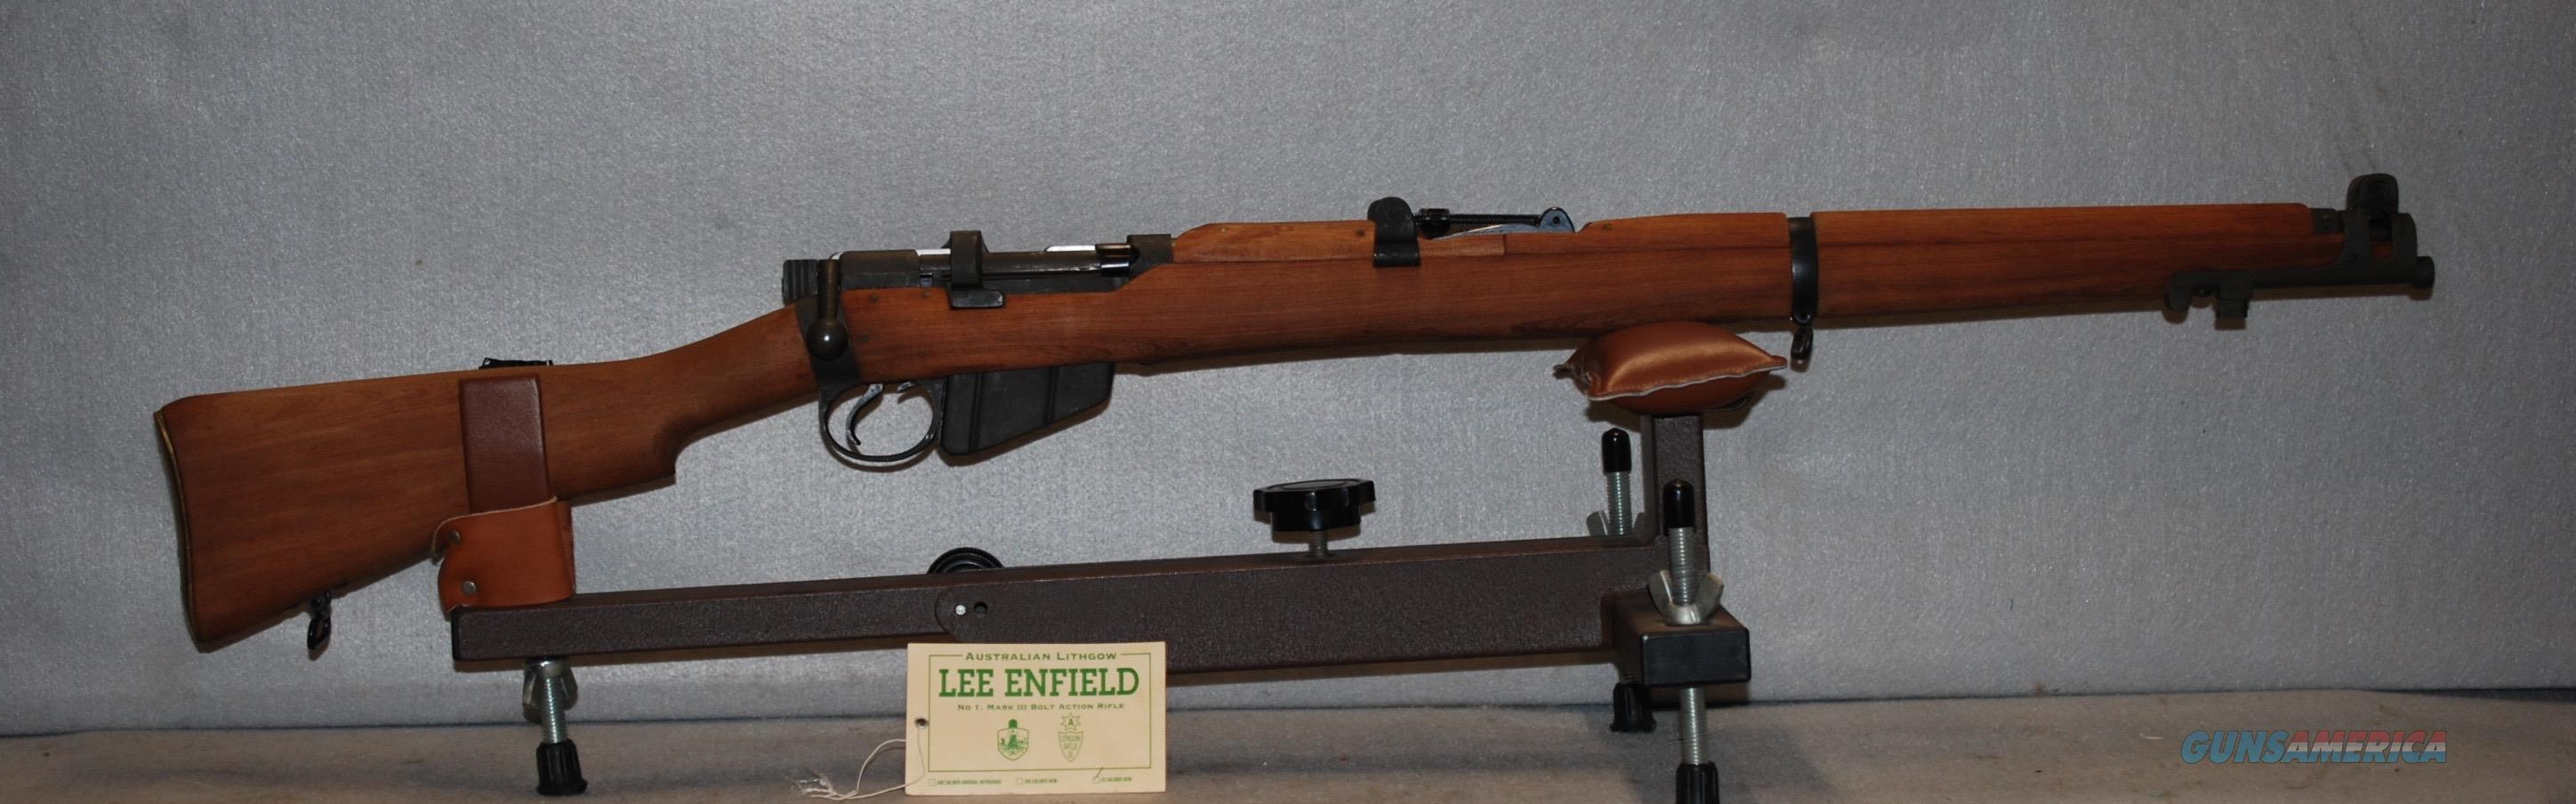 Lee Enfield training rifle new and unfired. 22 long rifle  Guns > Rifles > Enfield Rifle